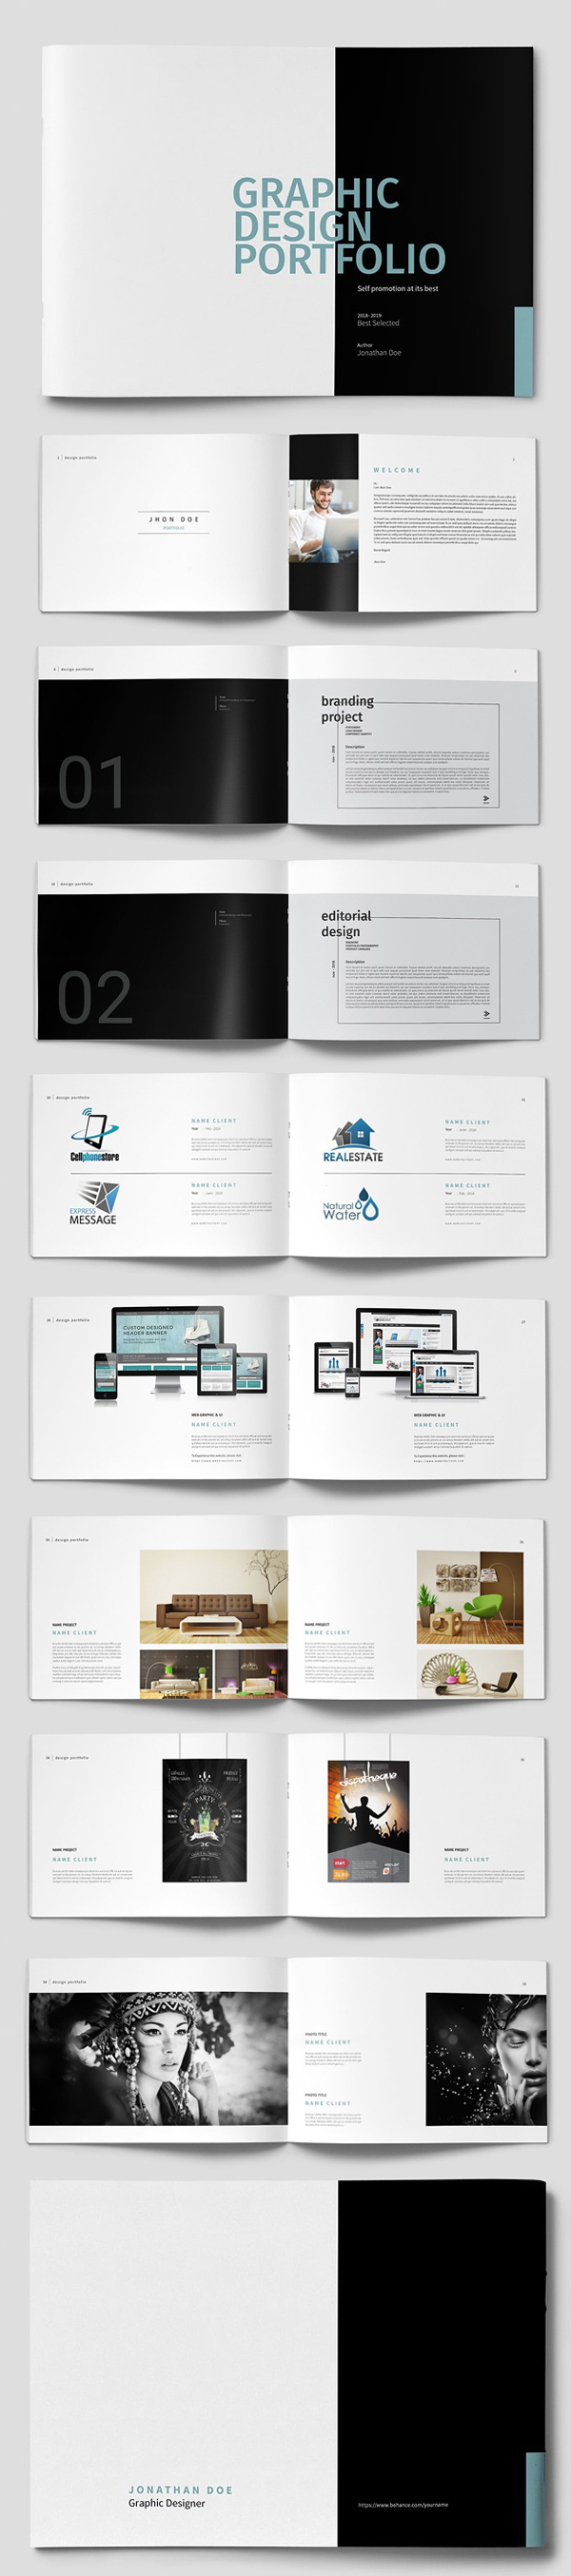 50+ Pages Graphic Design Portfolio Template